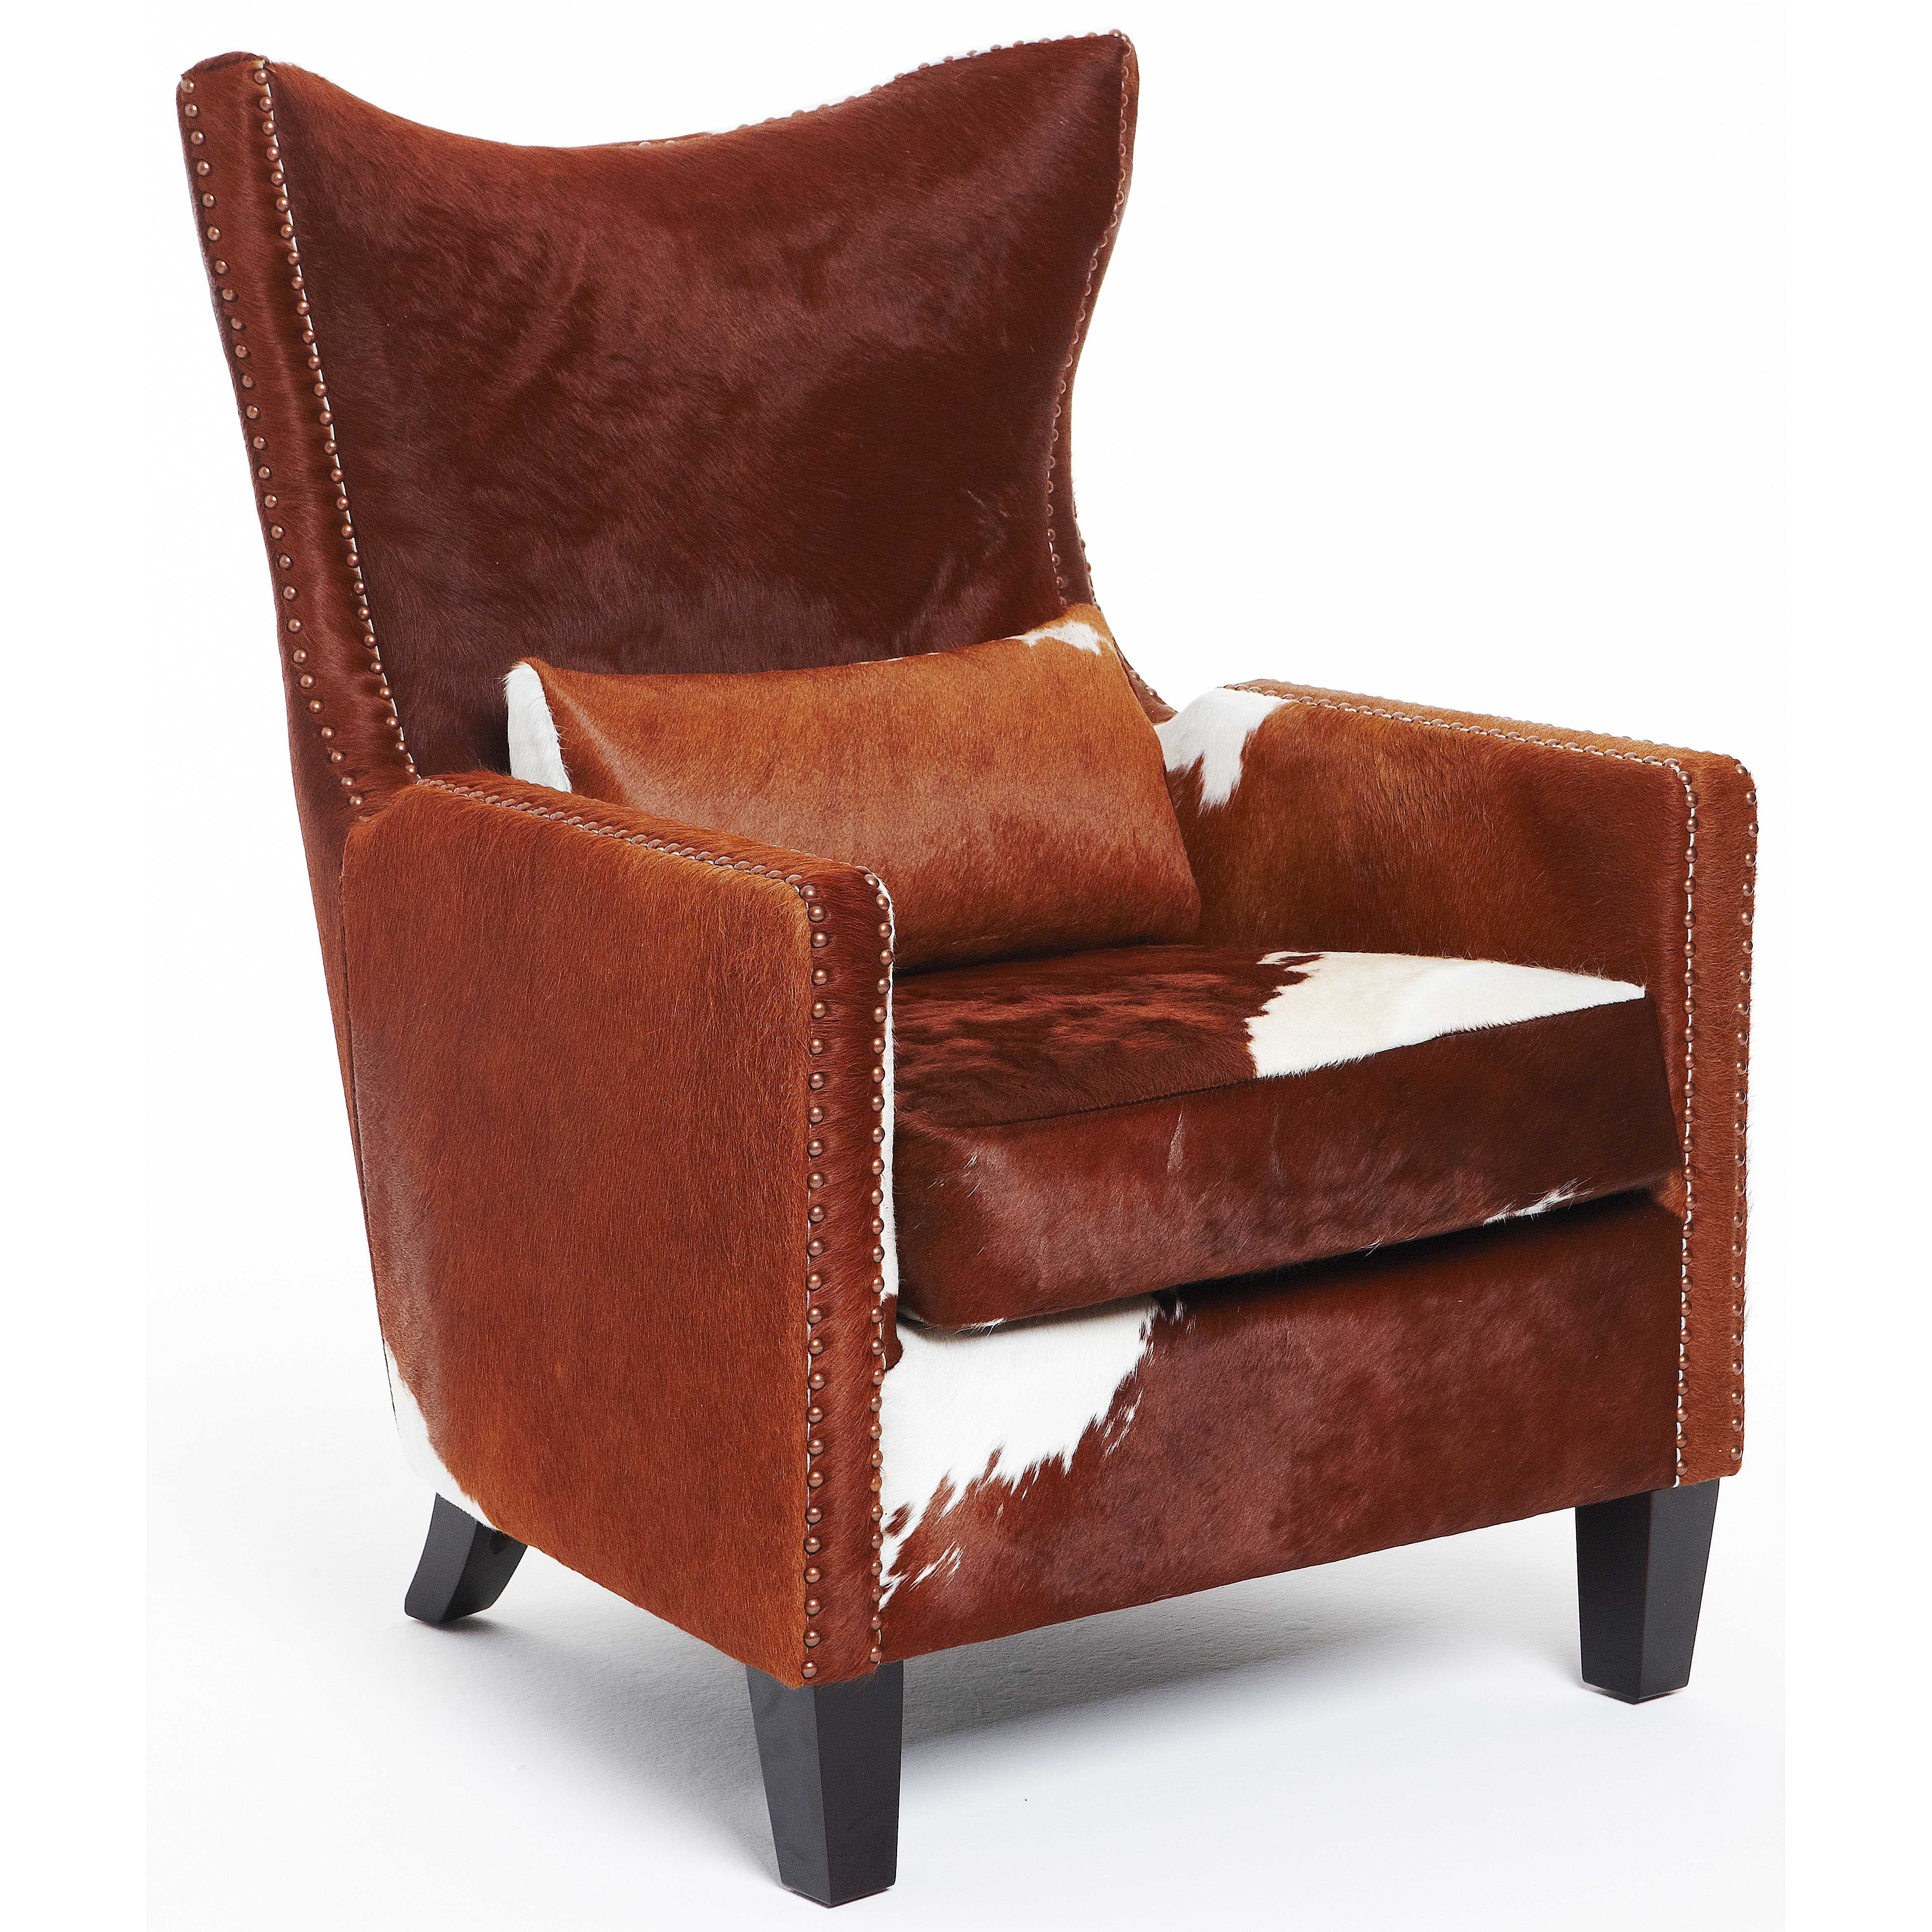 Zanzibar Accent Chair from Domayne for my office Office